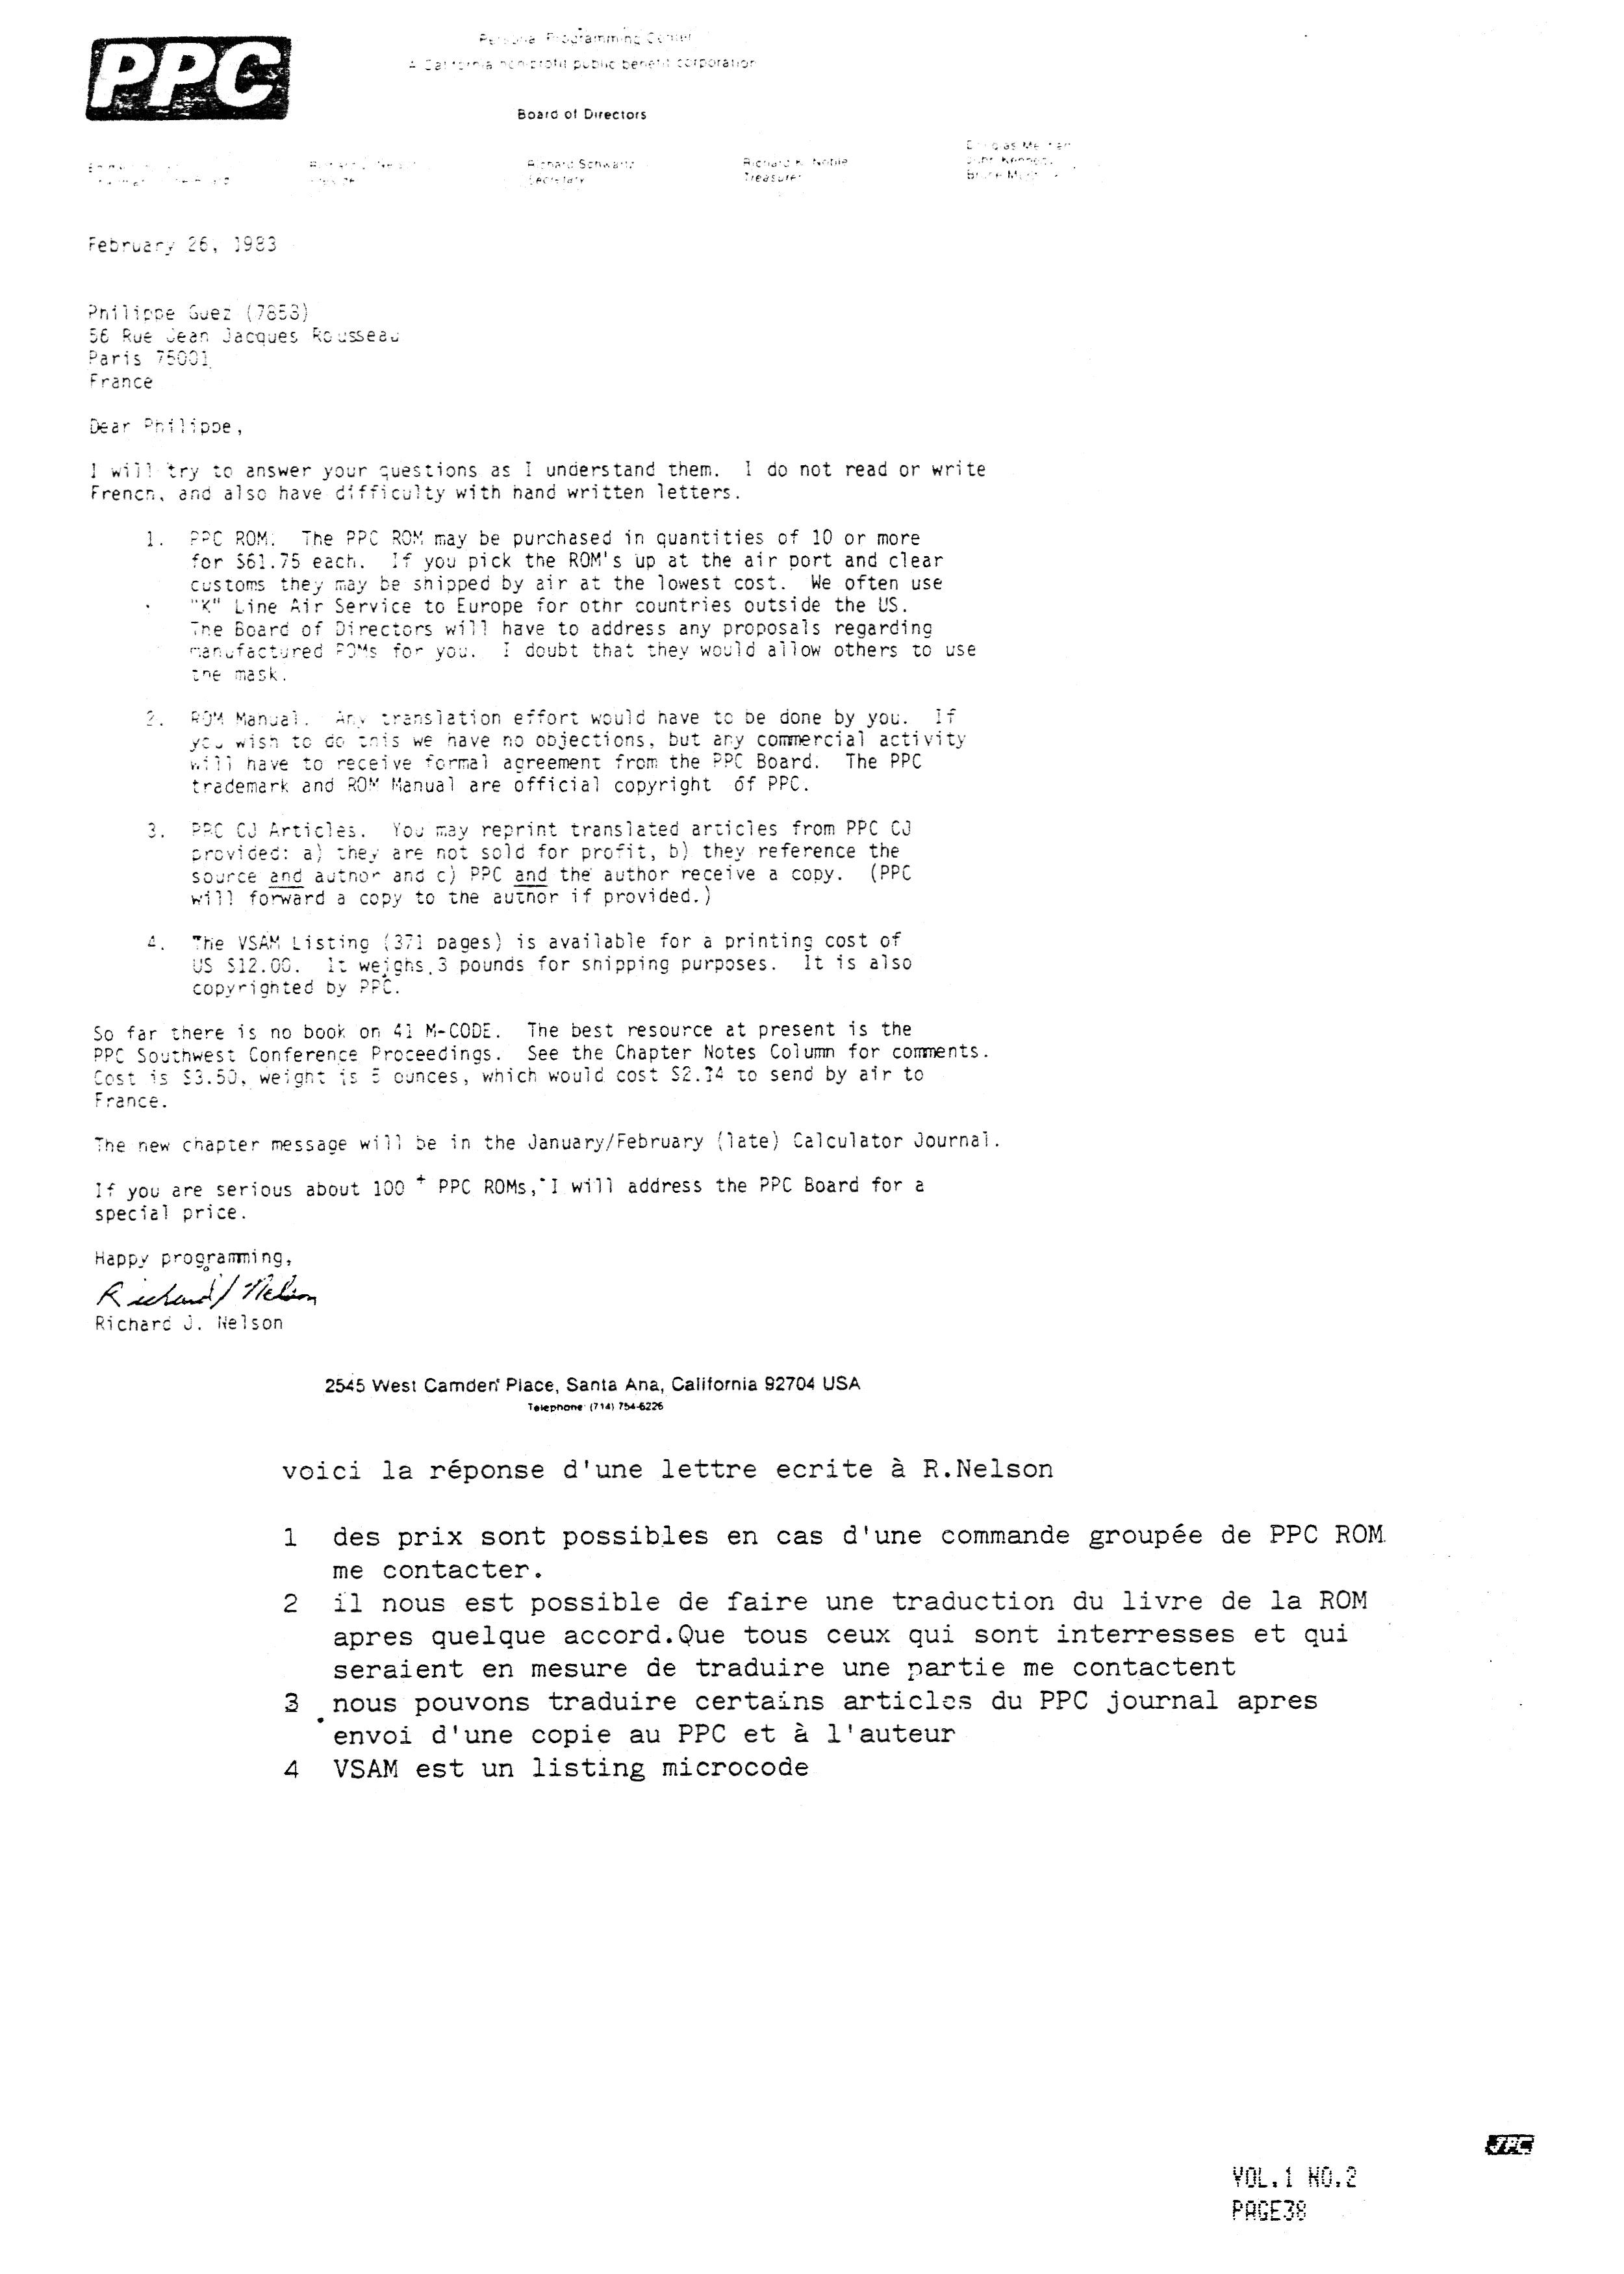 Jp-2-page-38-1000